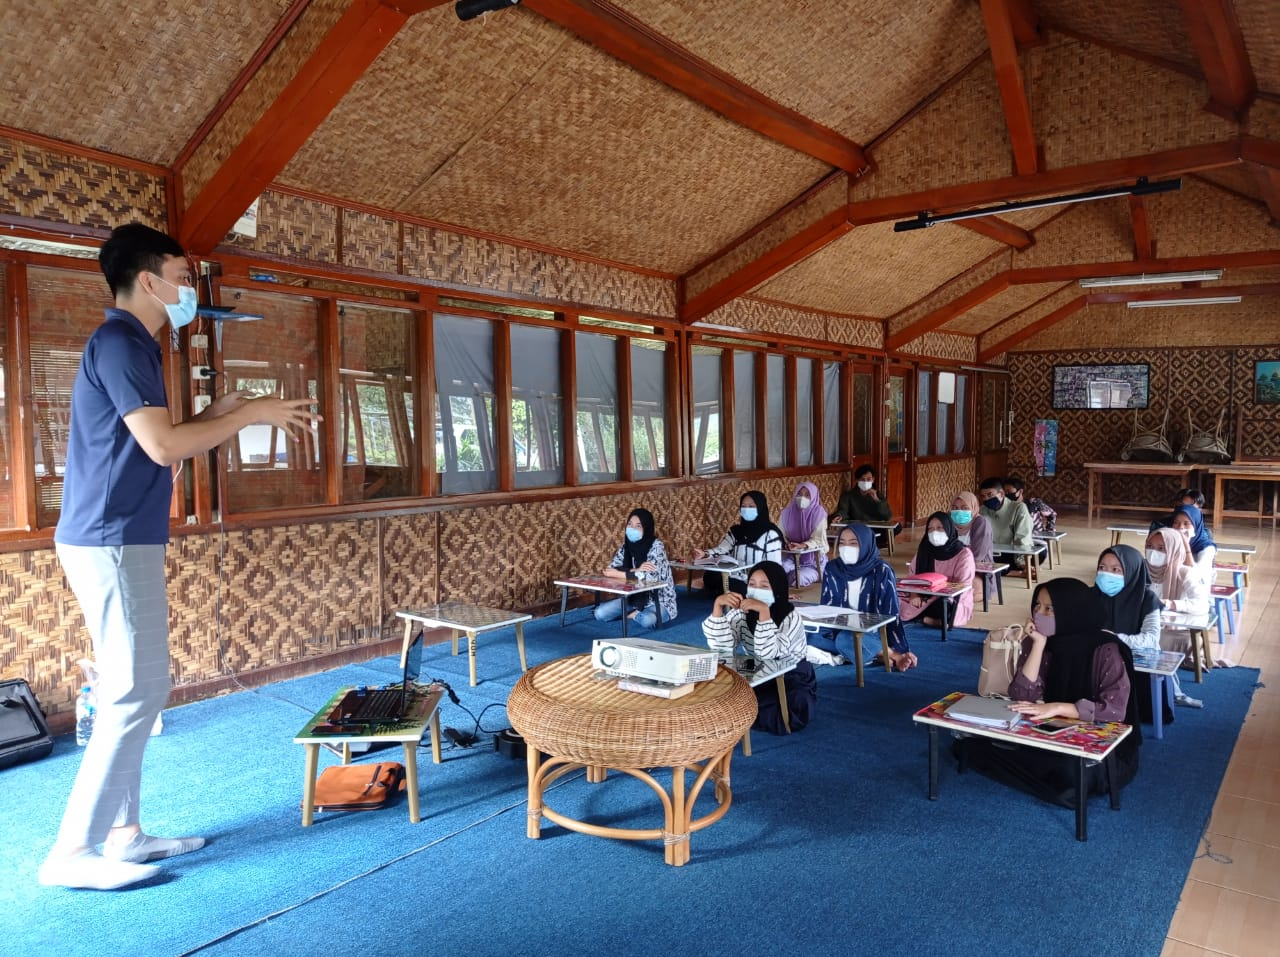 Last month, YUM's Vocational Training Center (VTC) conducted a Financial Literacy Workshop and invited a keynote speaker from Jakarta, Nicko Yosafat Marpaung